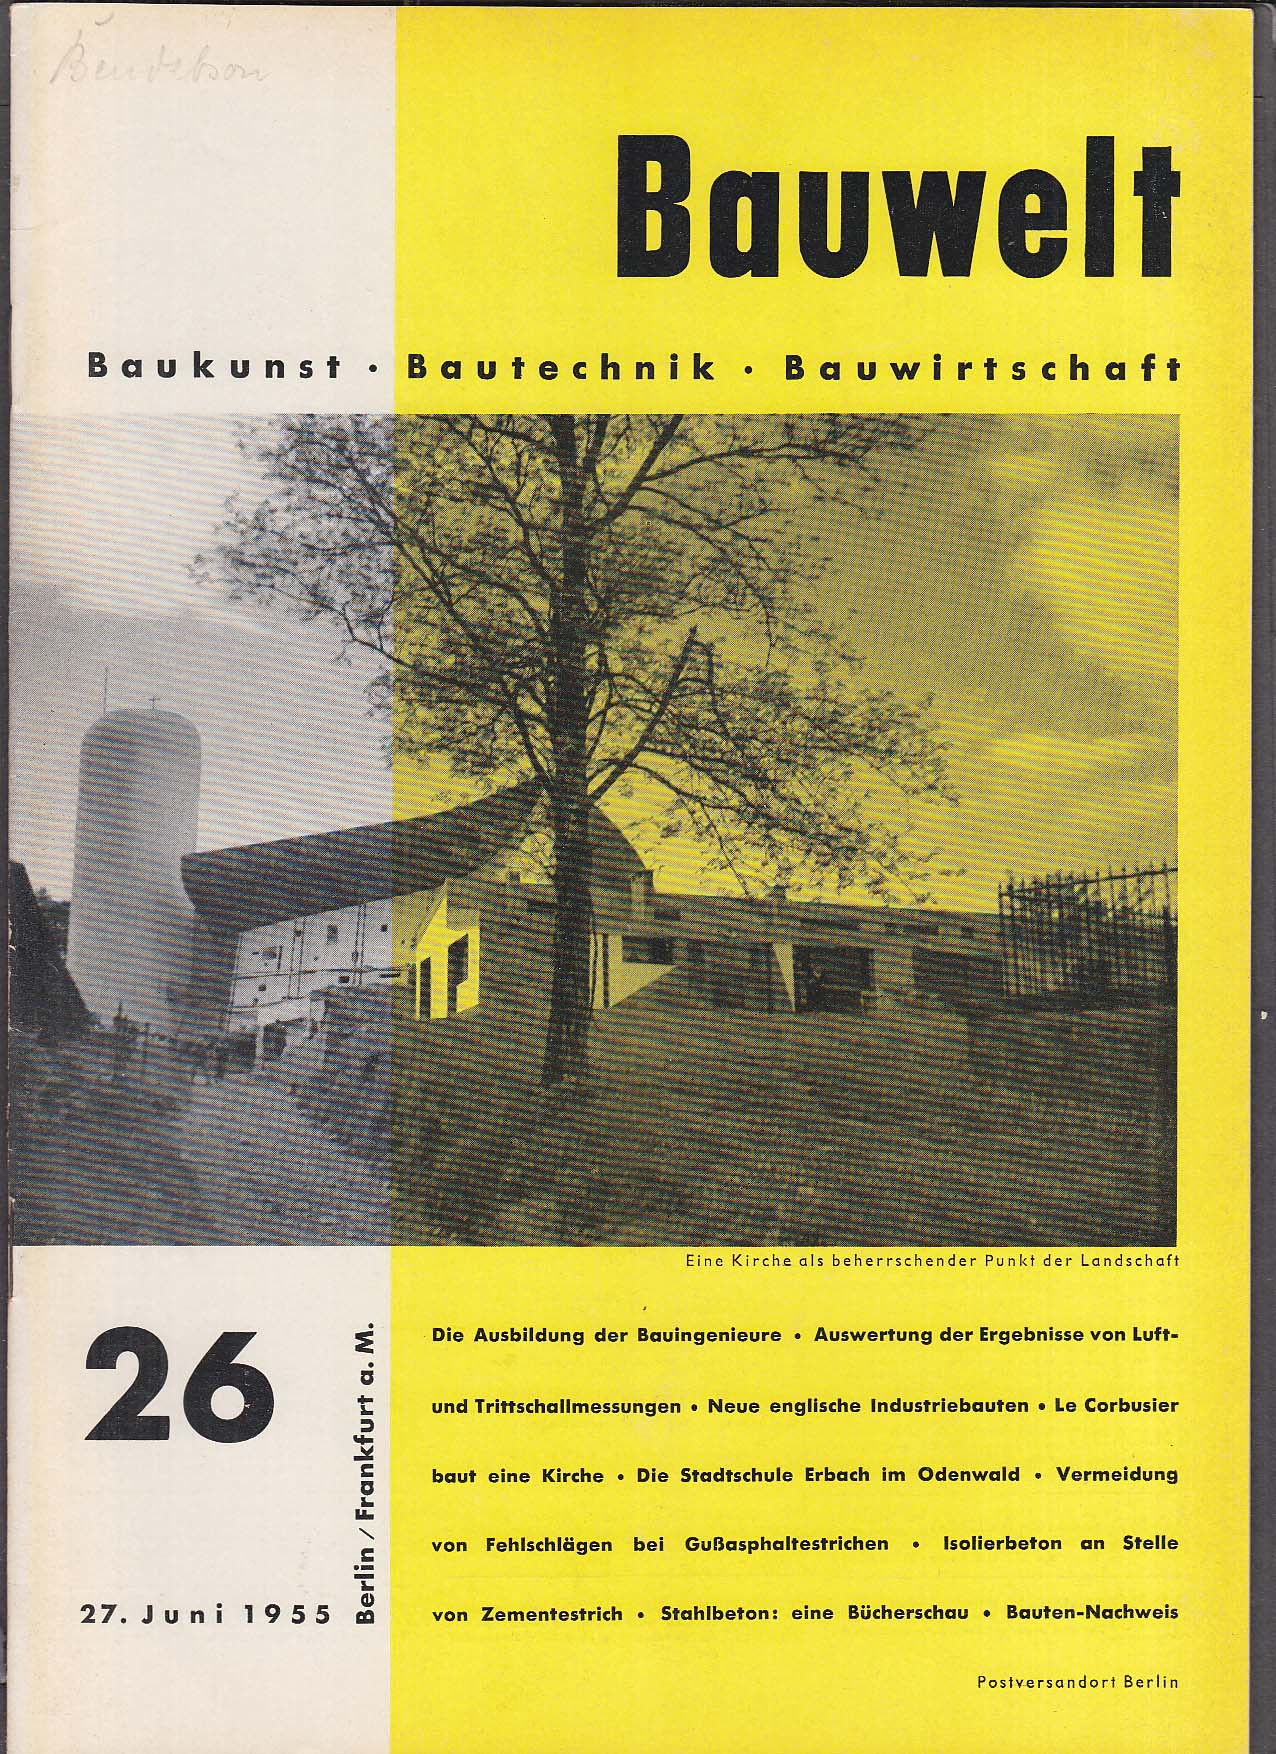 Bauwelt German architecture magazine 6/27/1955 26